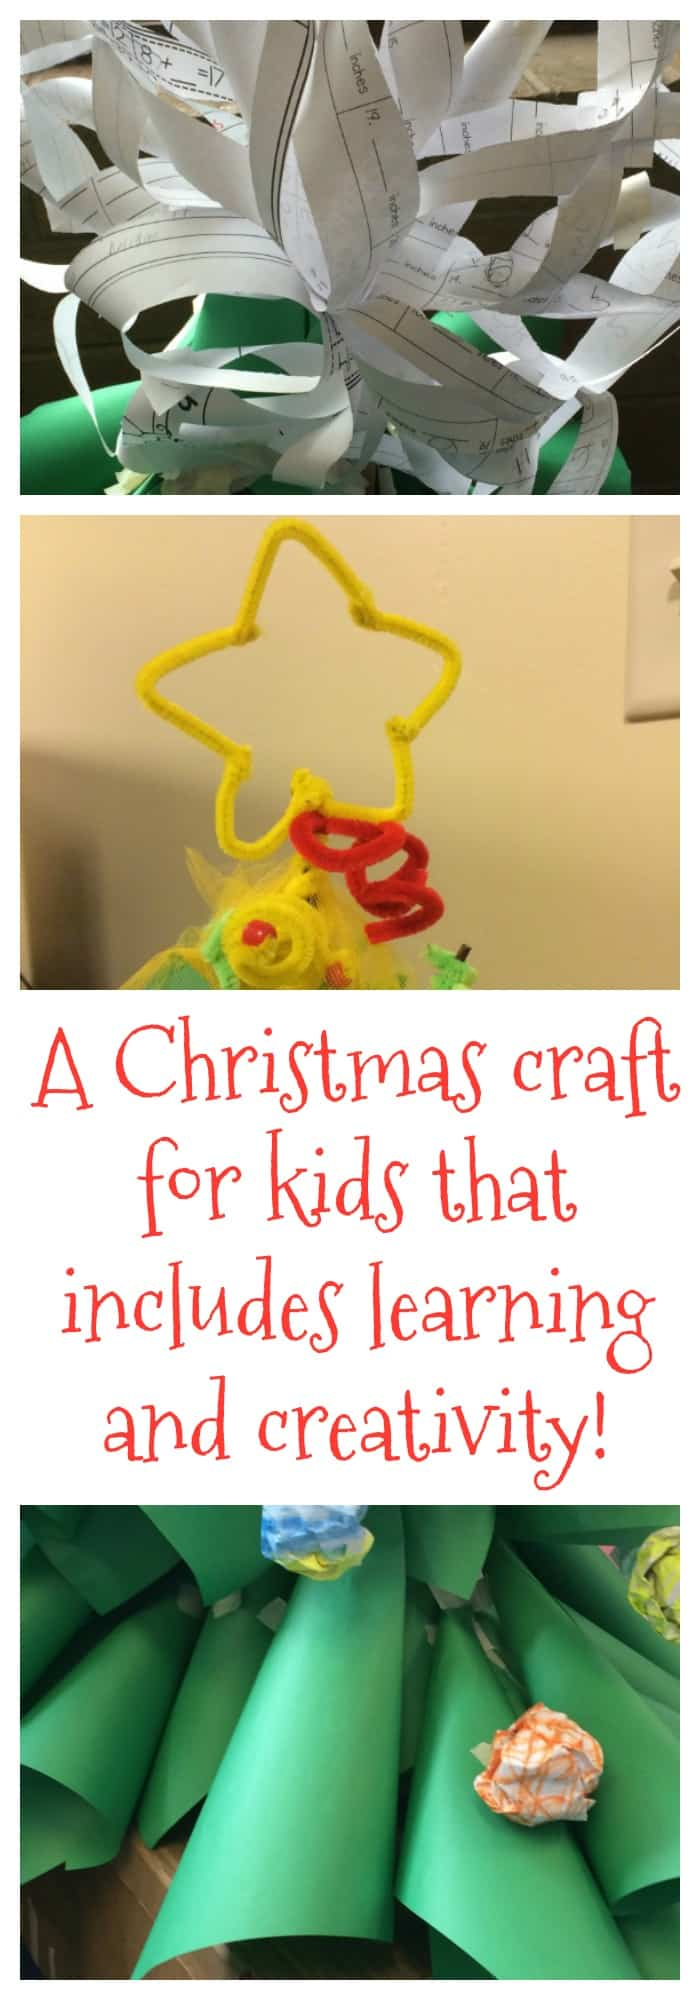 DIY and Crafts--A Christmas Craft for Kids that Includes Learning and Creativity--The Organized Mom